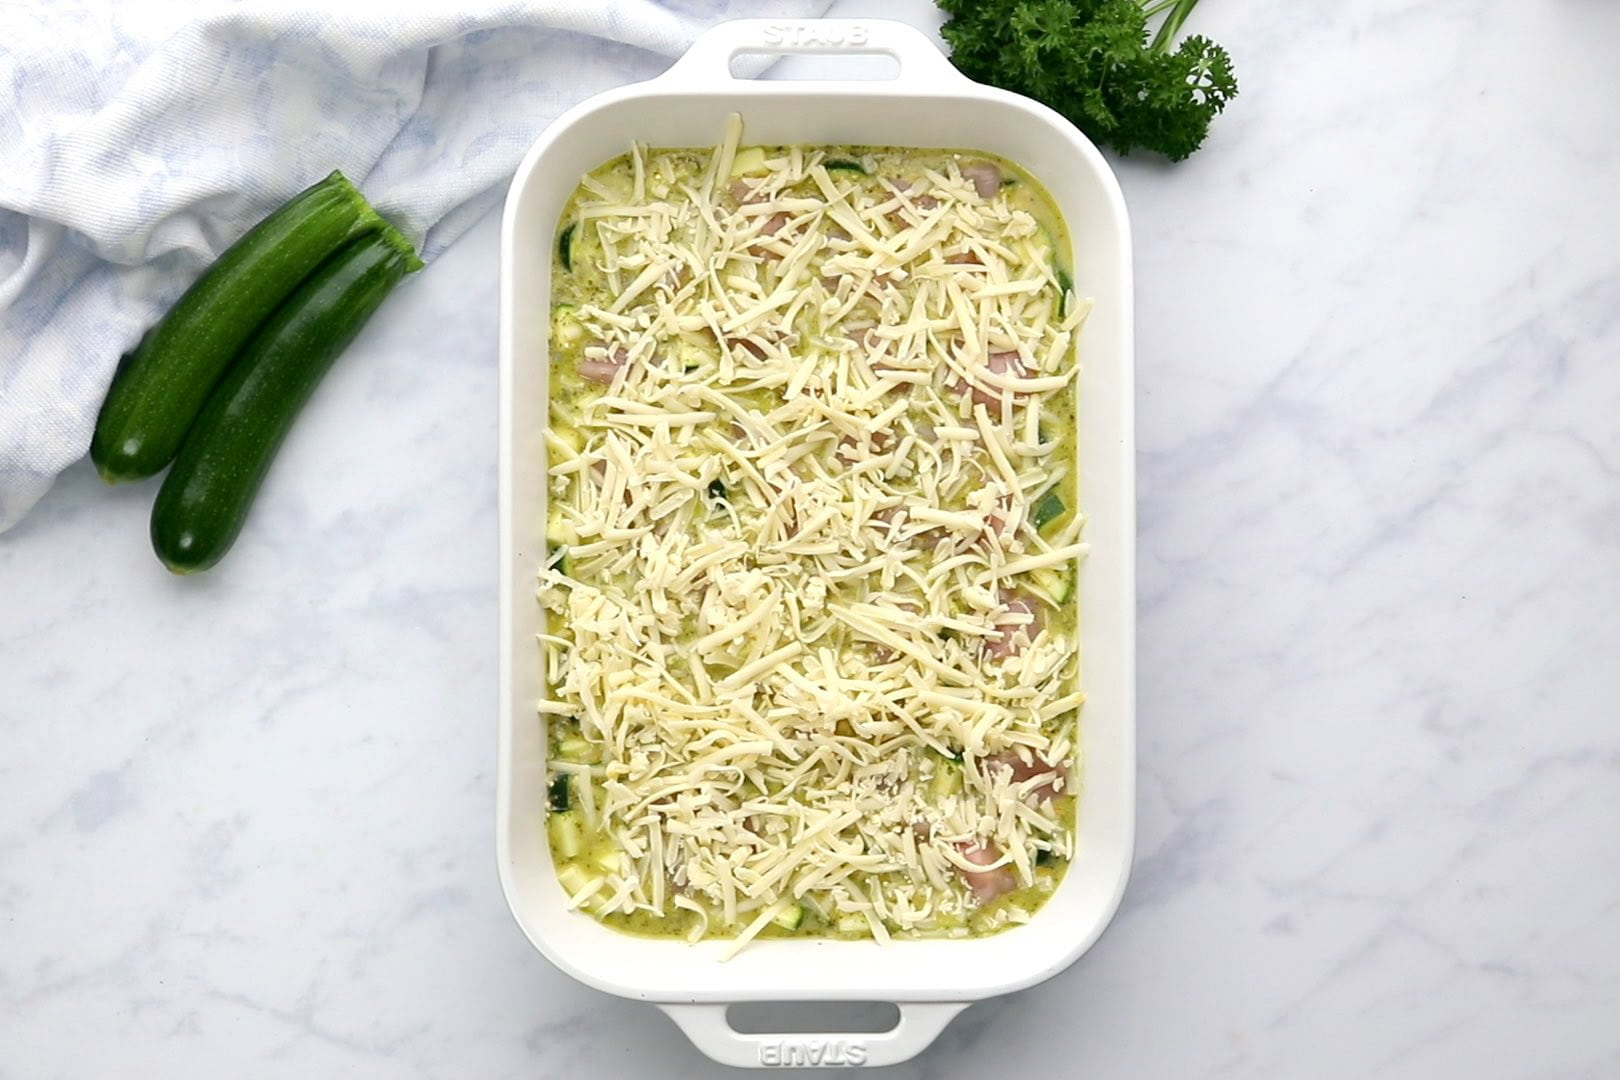 uncooked chicken and zucchini casserole in a rectangular white dish